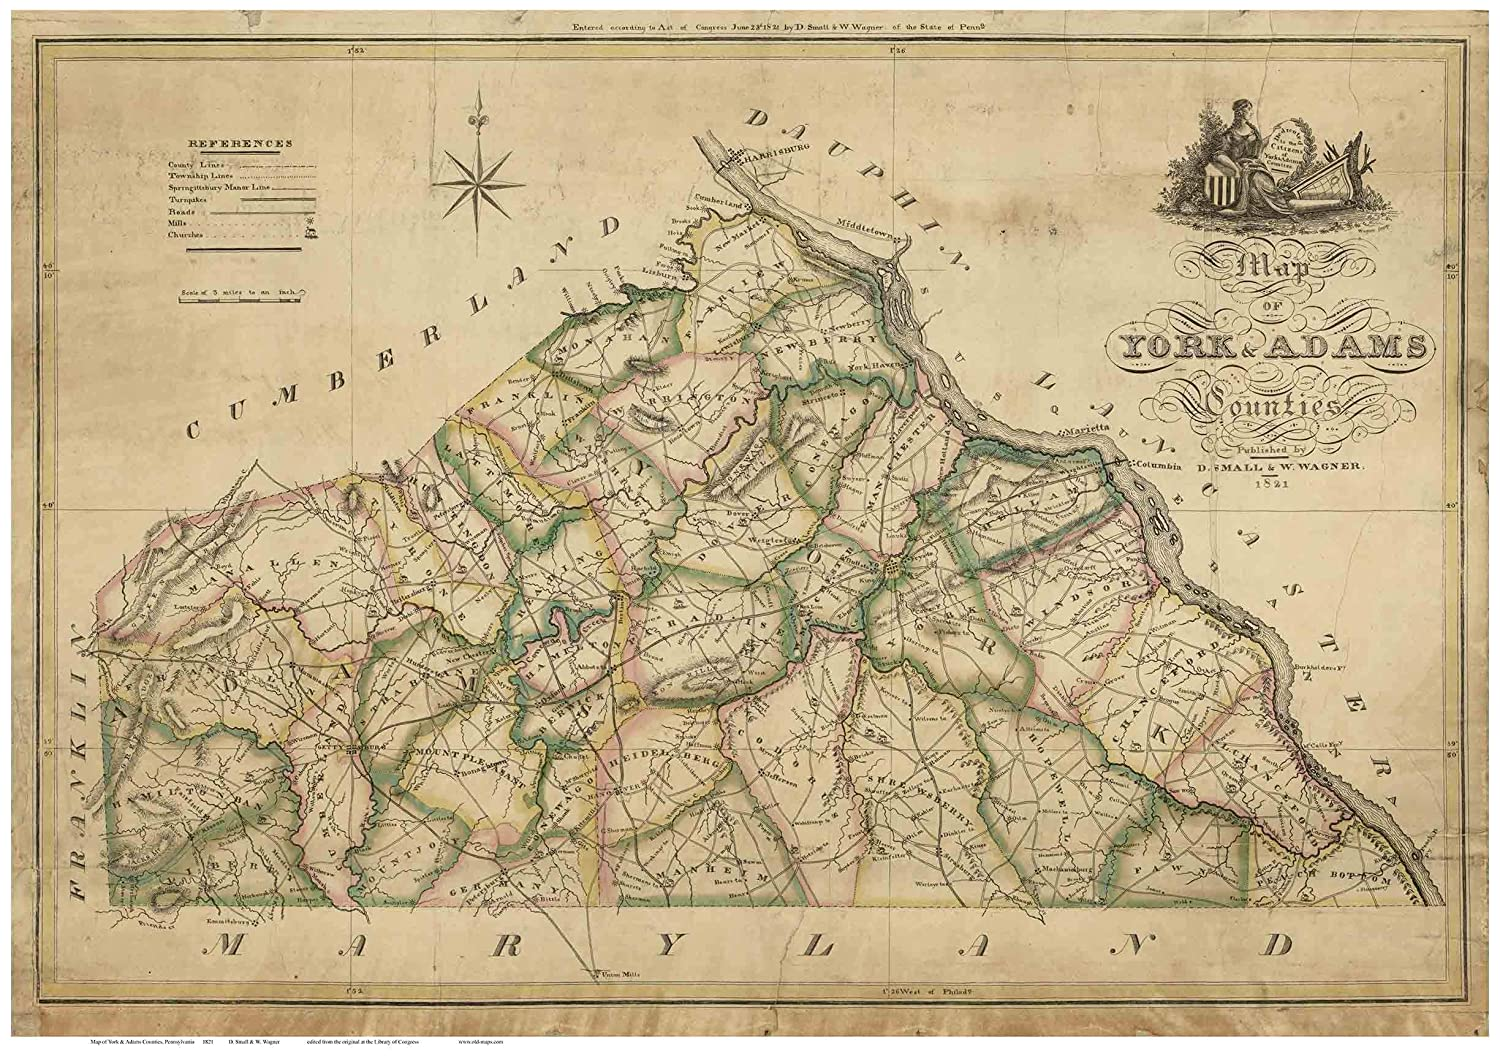 Amazon Com York And Adams Counties Pa 1821b Old Map Old Wall Map Reprint With Homeowner Names Genealogy Handmade